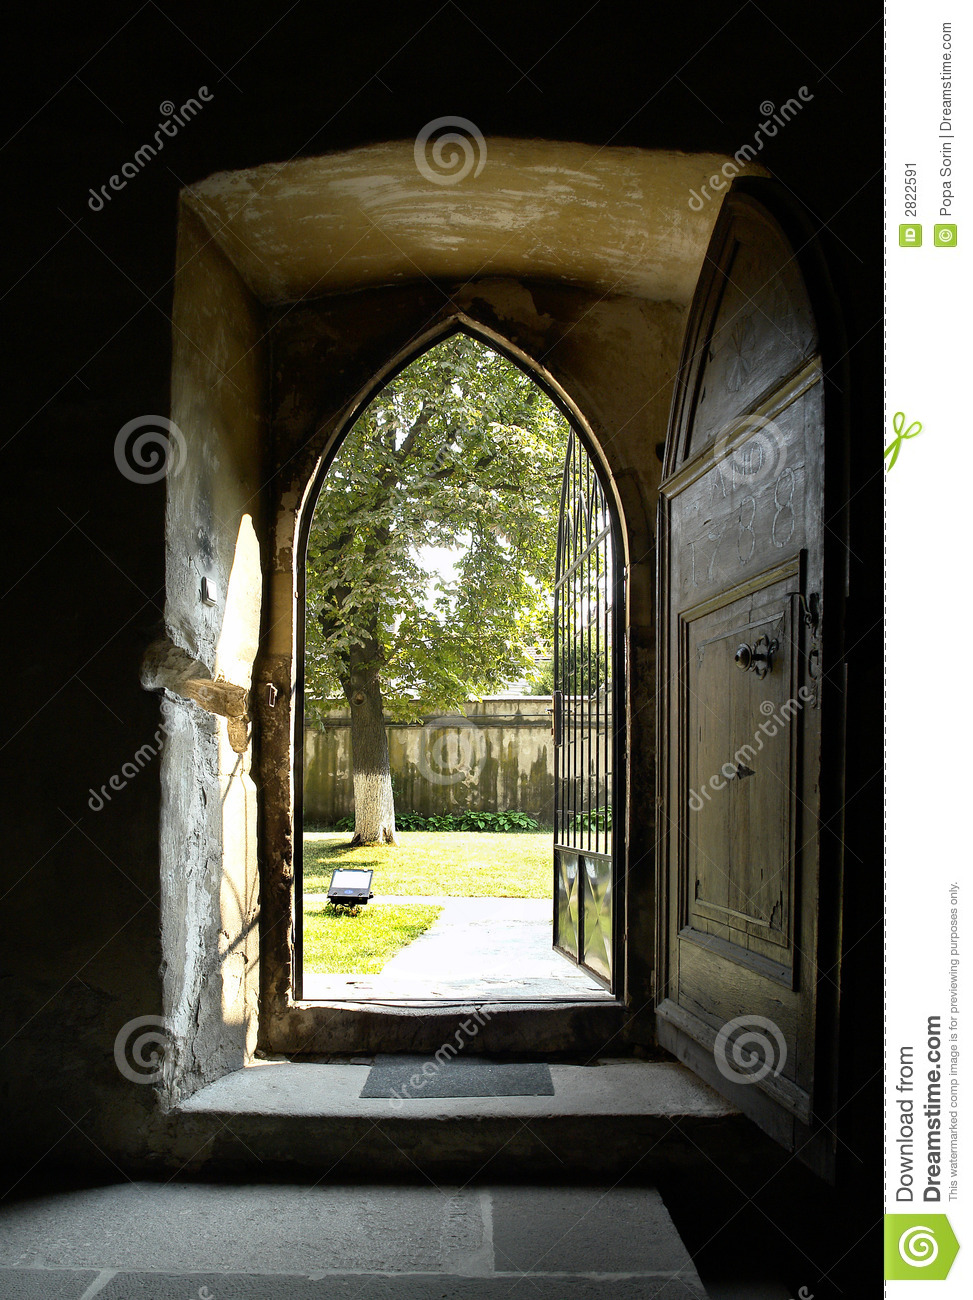 Open church door clipart - Church Door Open